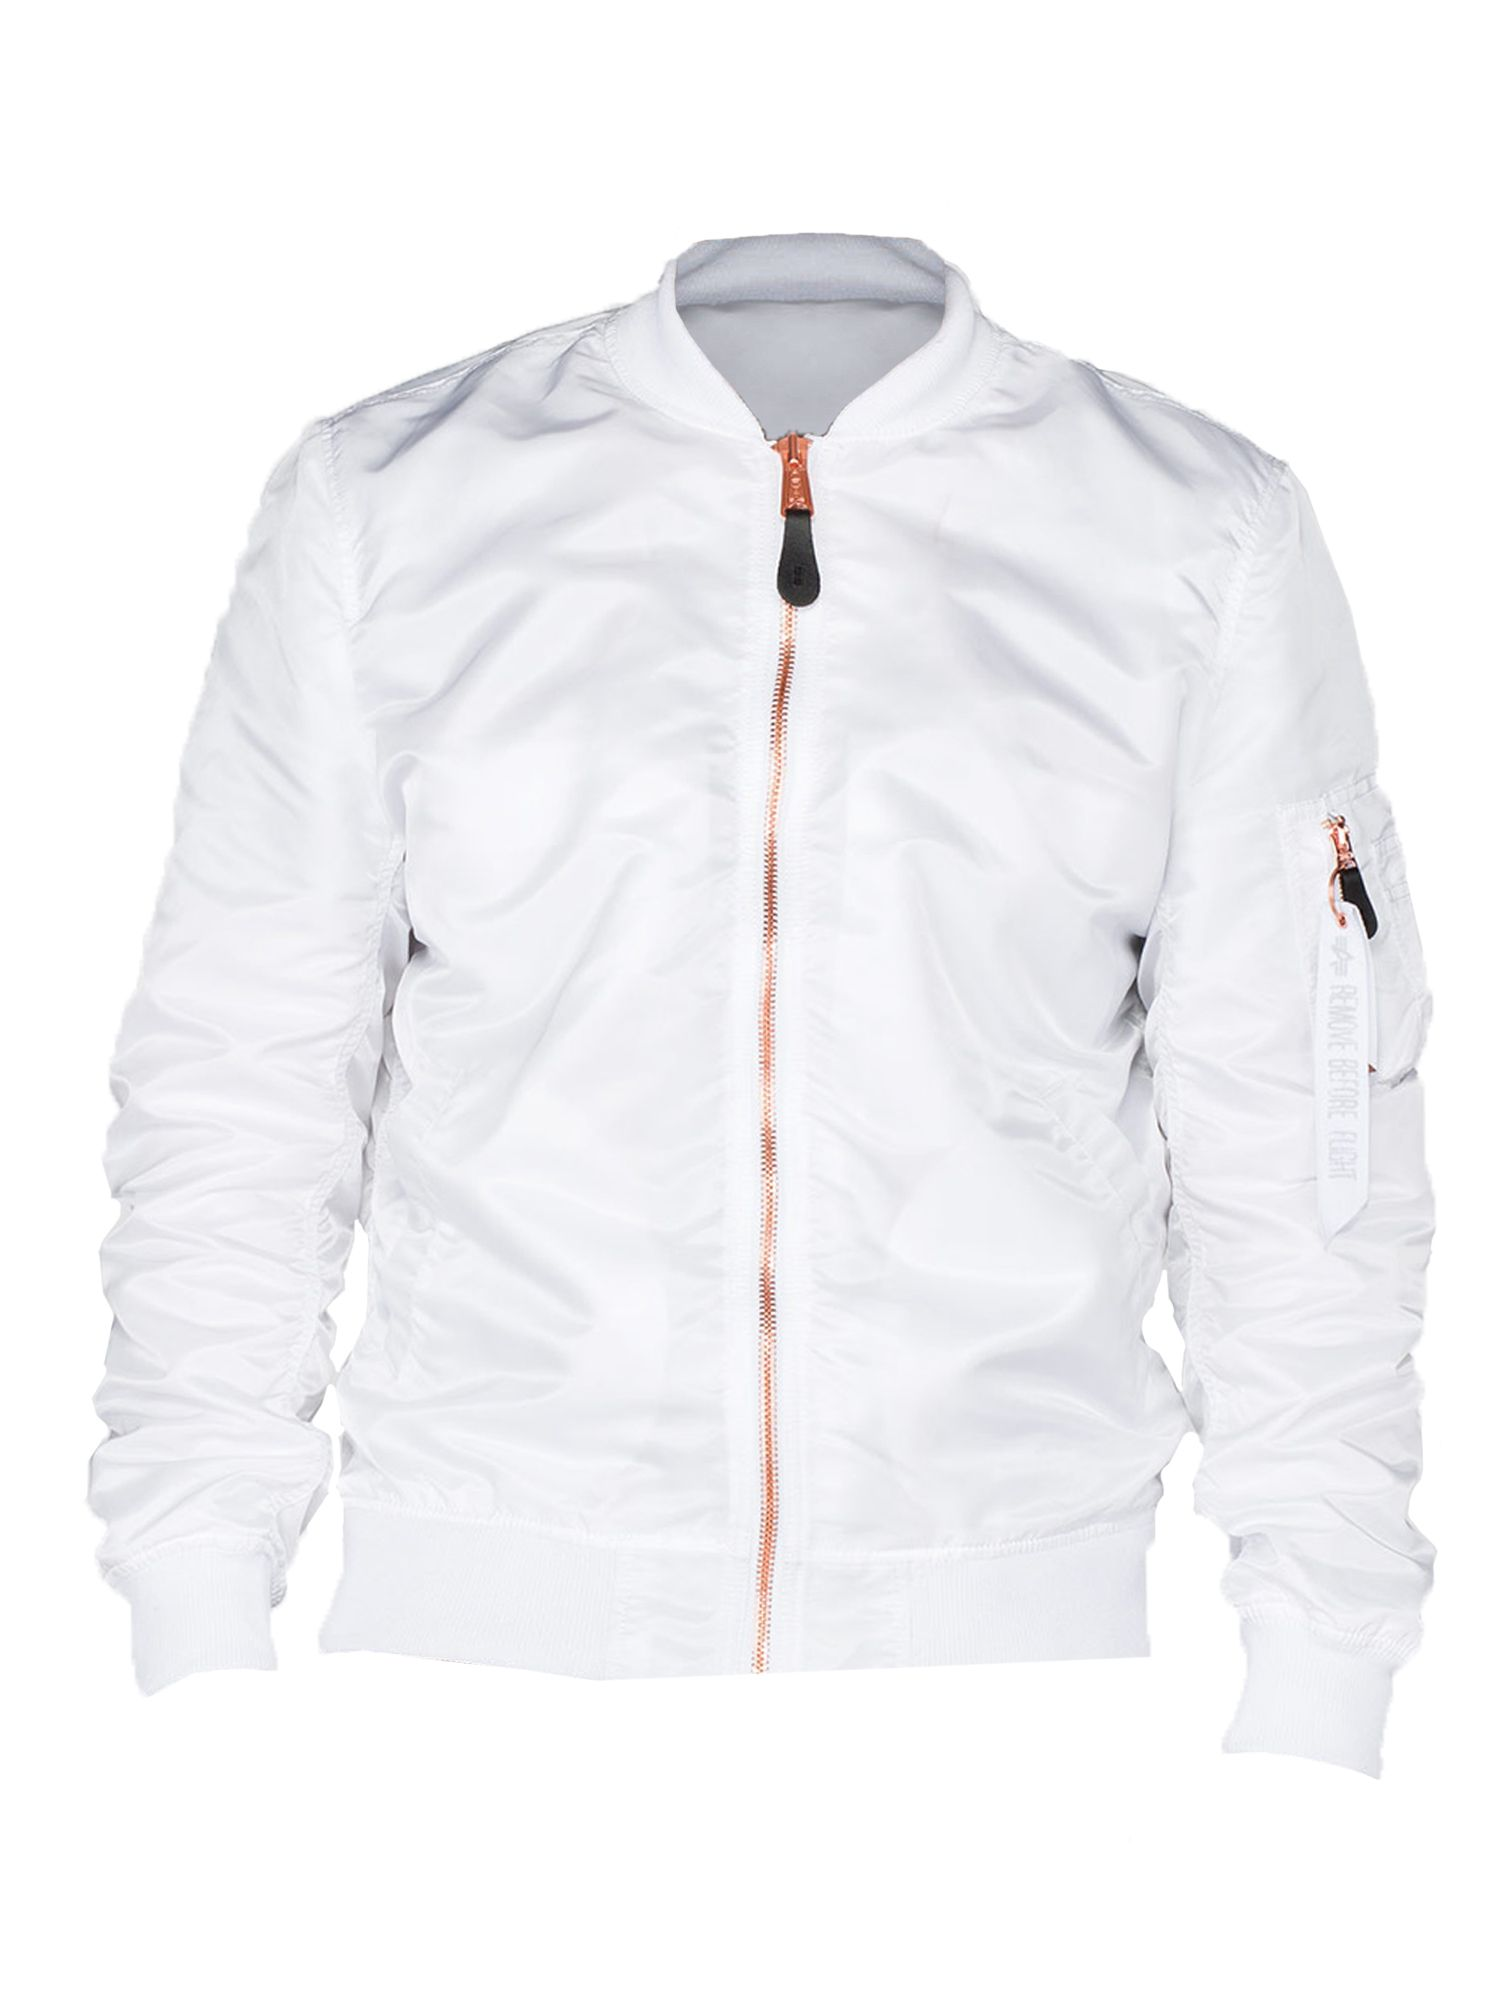 Alpha Industries Men's Alpha Industries Ma-1 vf lw jacket, White